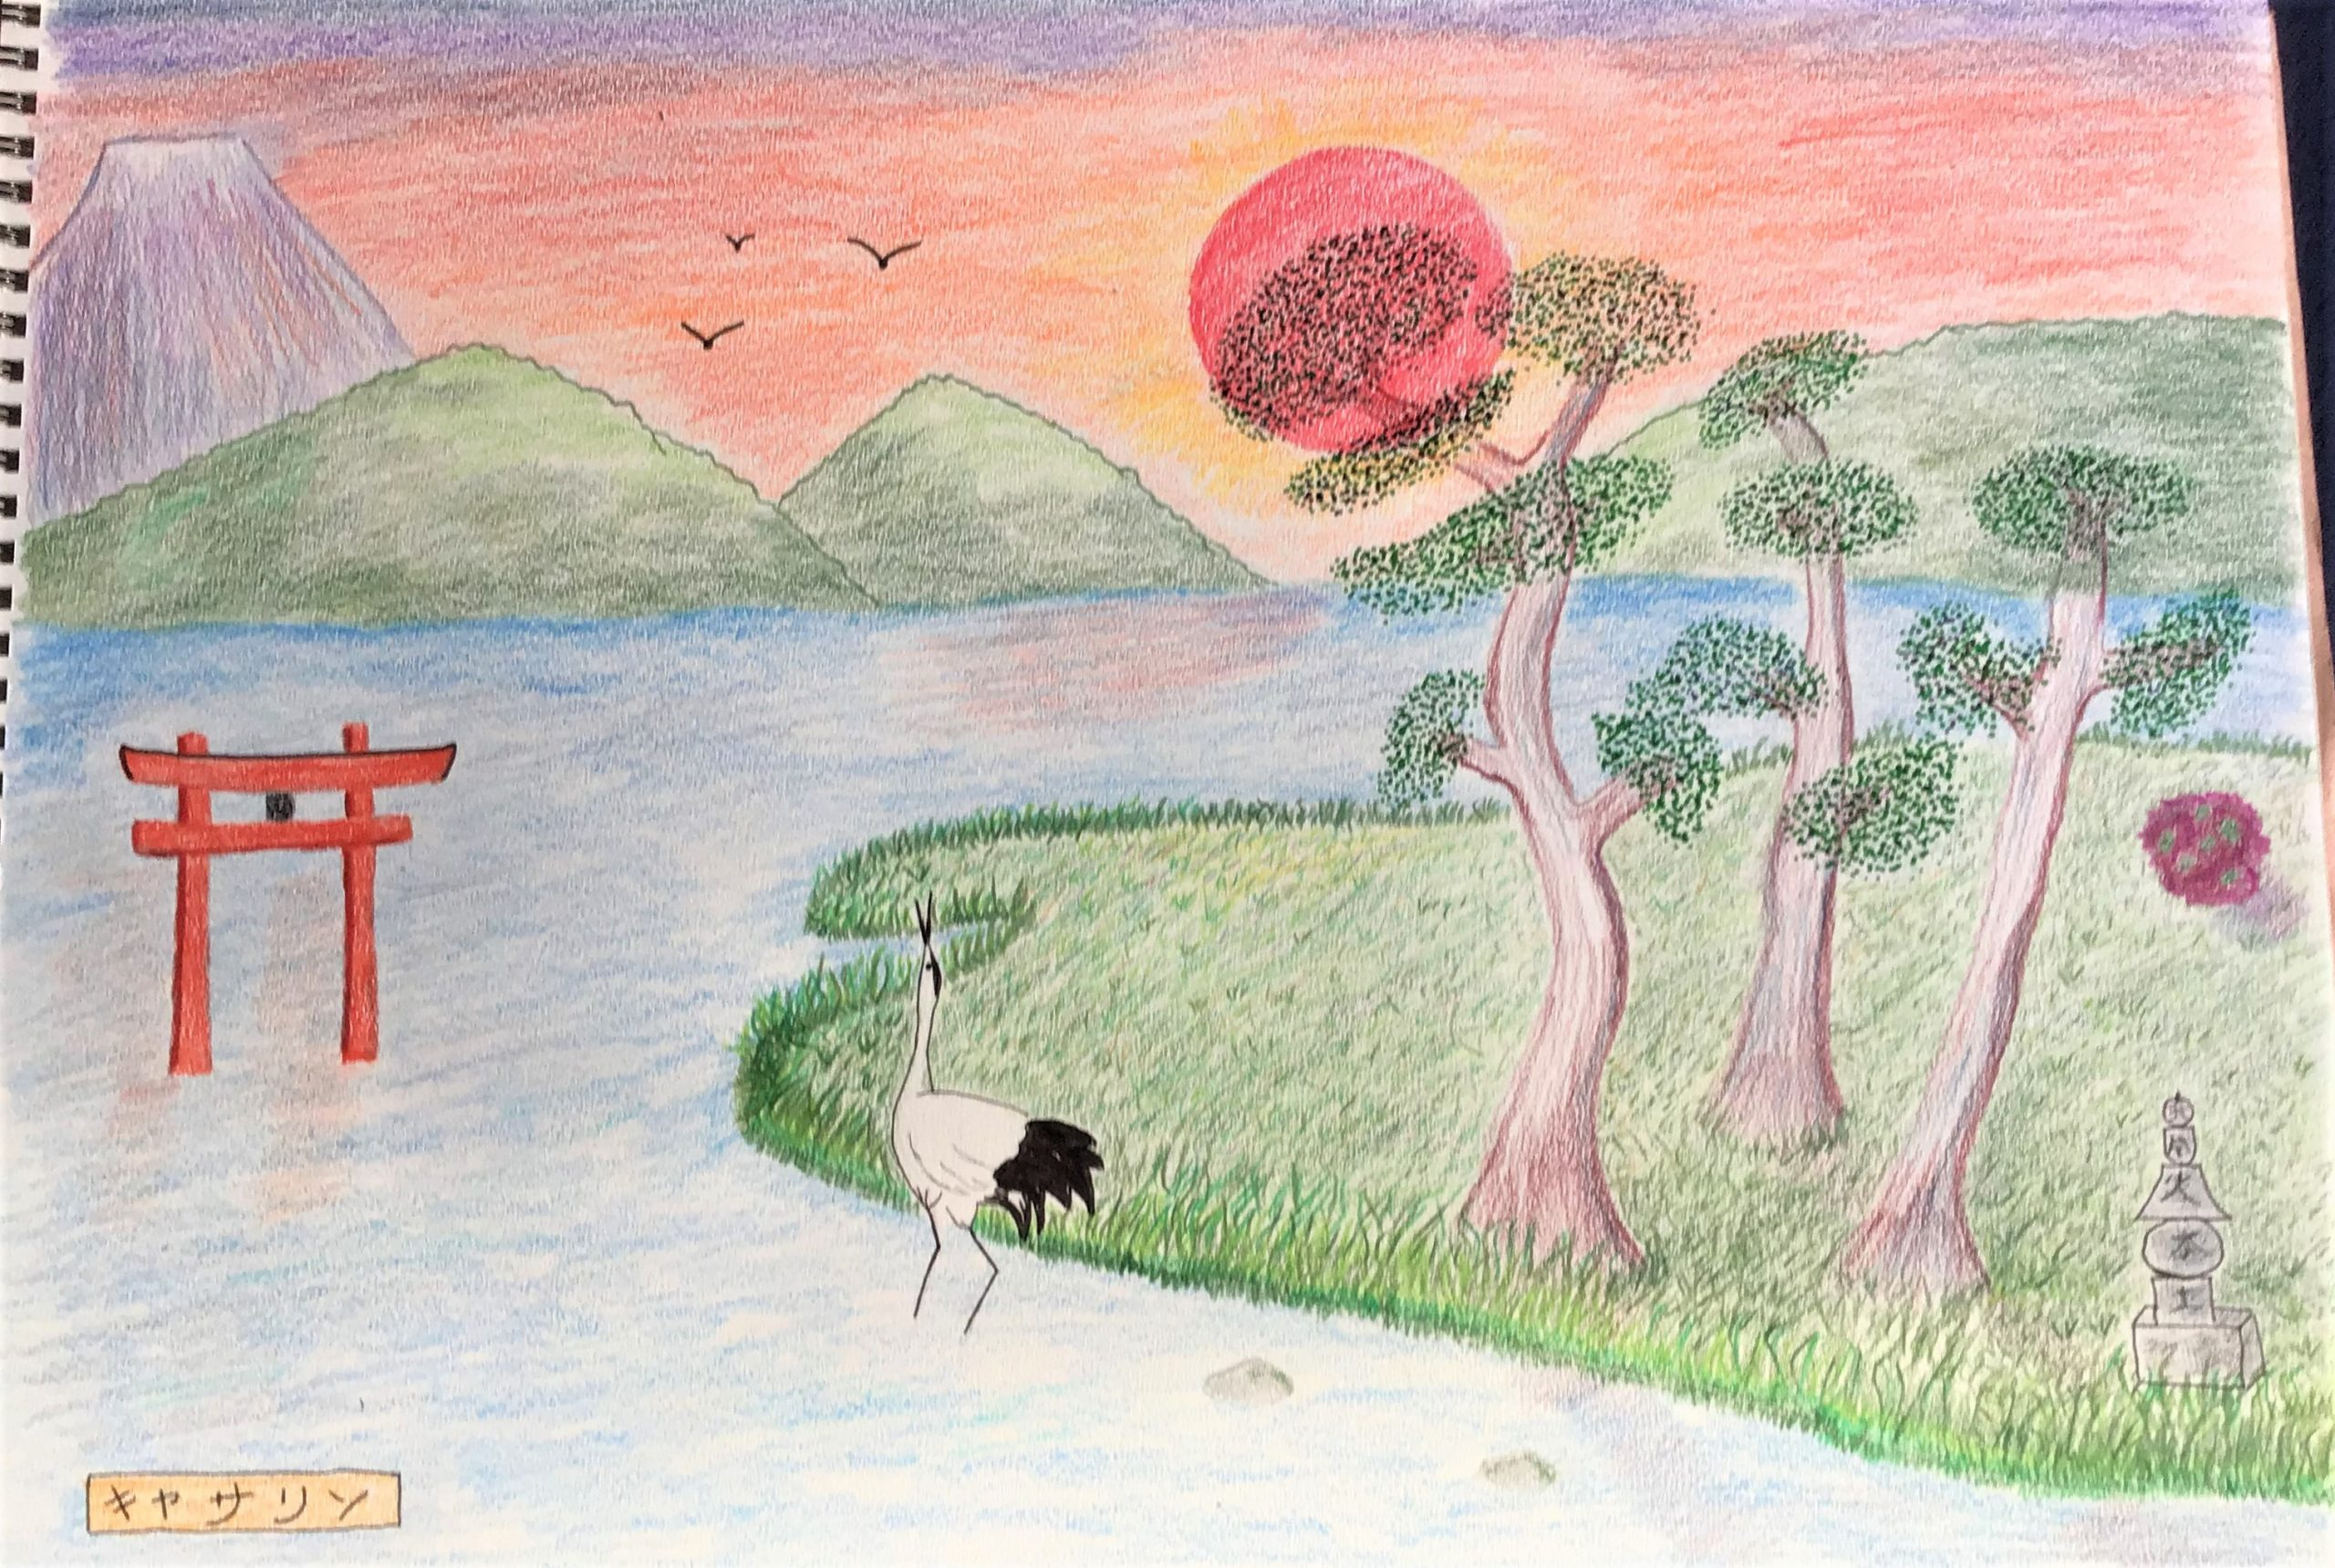 Catherine's 'Japanese landscape' created at online art course with artist Raya Brown